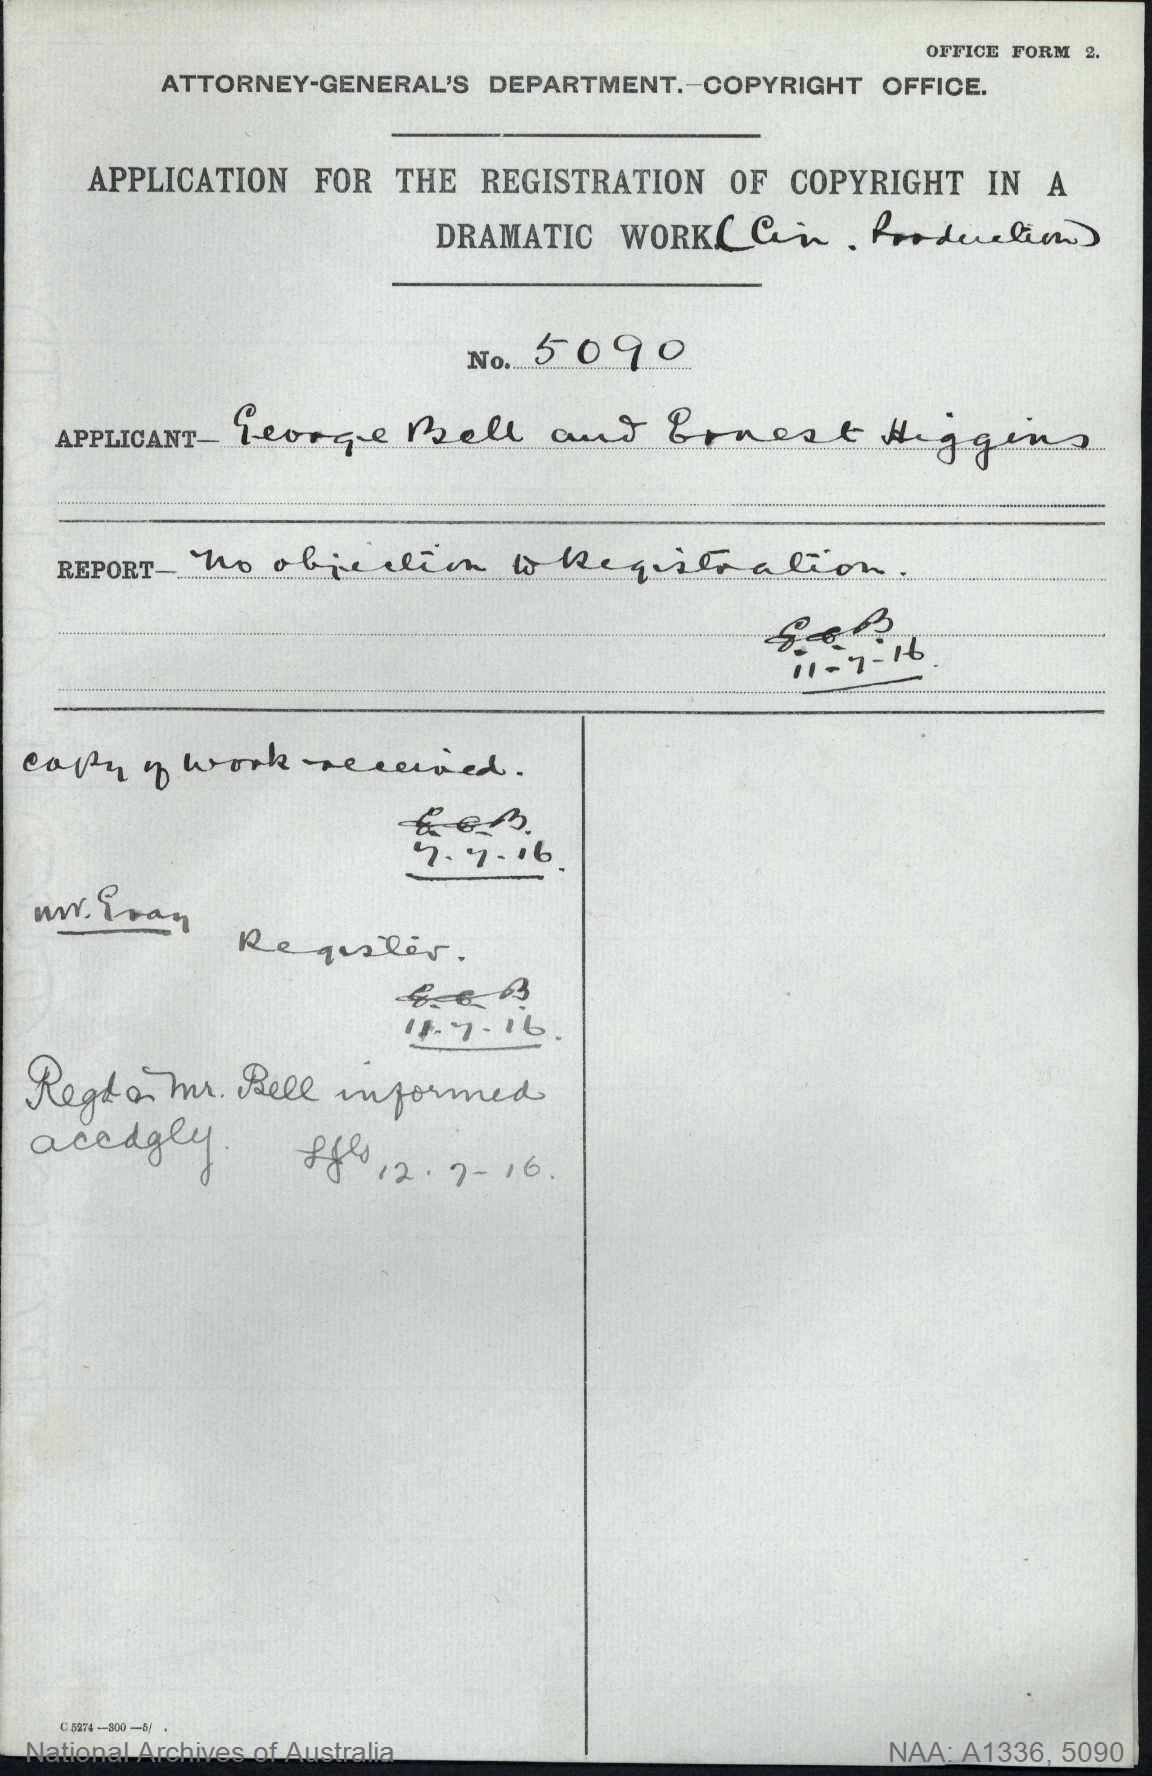 AUTHOR George Bell and Ernest Higgins : ADDRESS Sydney : TITLE OF WORK Australia Prepared Her Part in the World's War : TYPE OF WORK Dramatic Work : APPLICANT George Bell and Ernest Higgins : DATE OF APPLICATION 6 Jul 1916 : DATE COPYRIGHT REGISTERED 12 Jul 1916 : WORK ENCLOSED? Yes